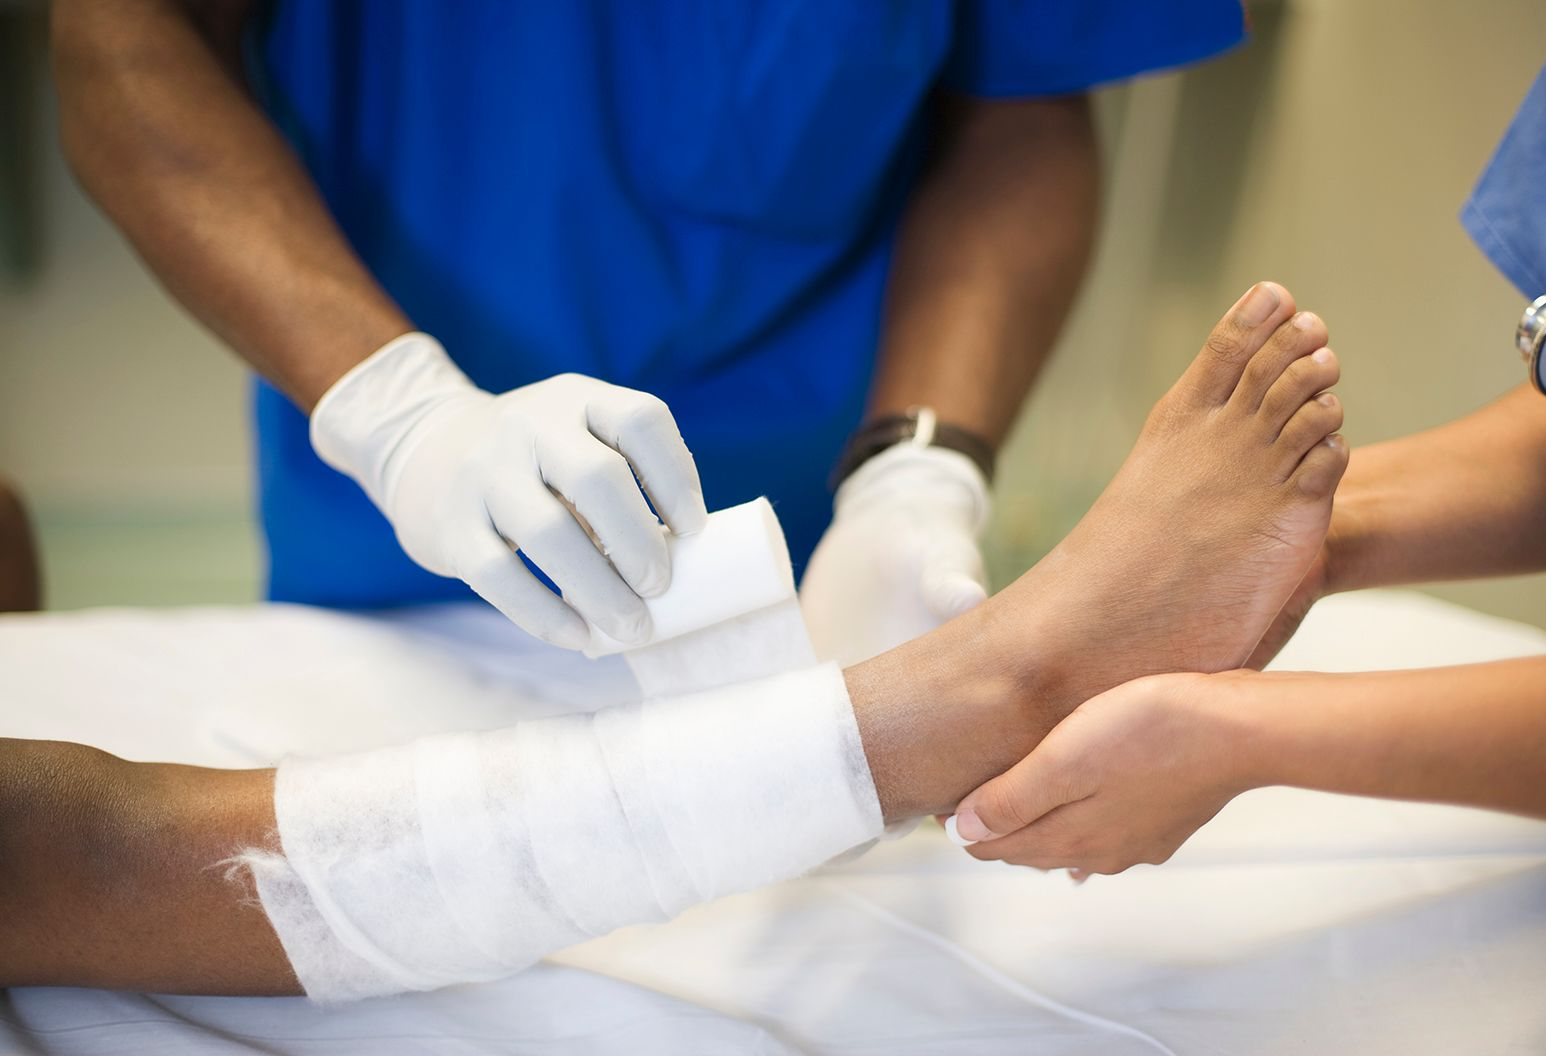 Doctor bandages patients ankle